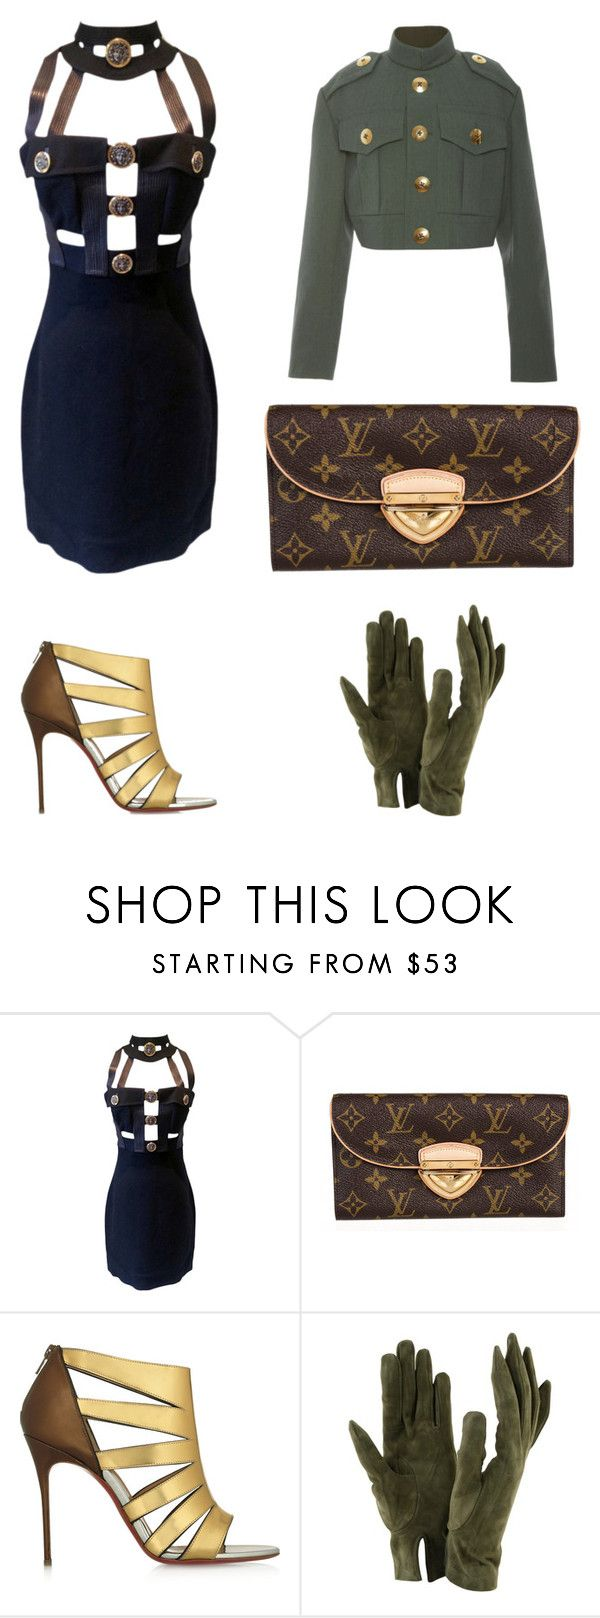 60 Second Style: NYFW After Party by adriana-claudia on Polyvore featuring Versace, Marc Jacobs, Christian Louboutin, Louis Vuitton, Sermoneta and nyfwafterparty